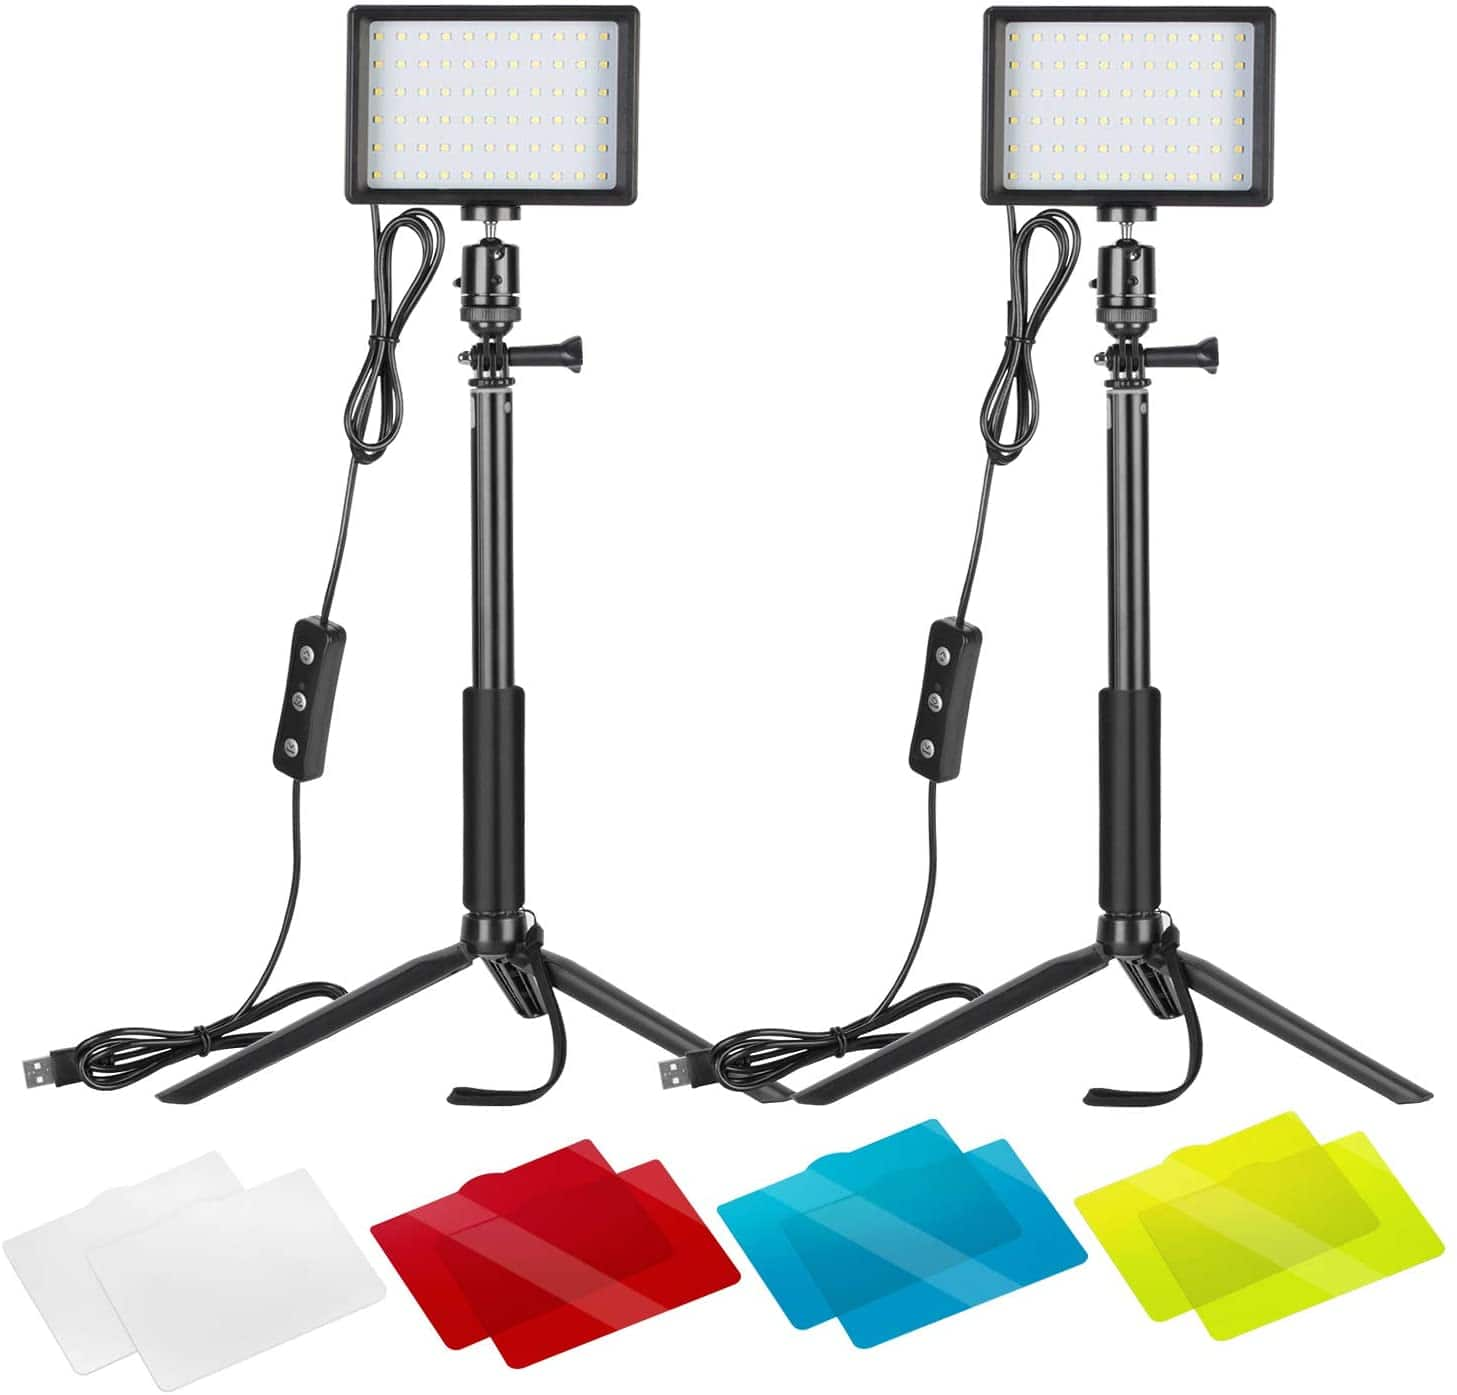 Neewer 2-Pack 5600K USB Video Lights - $25.50 + FSSS